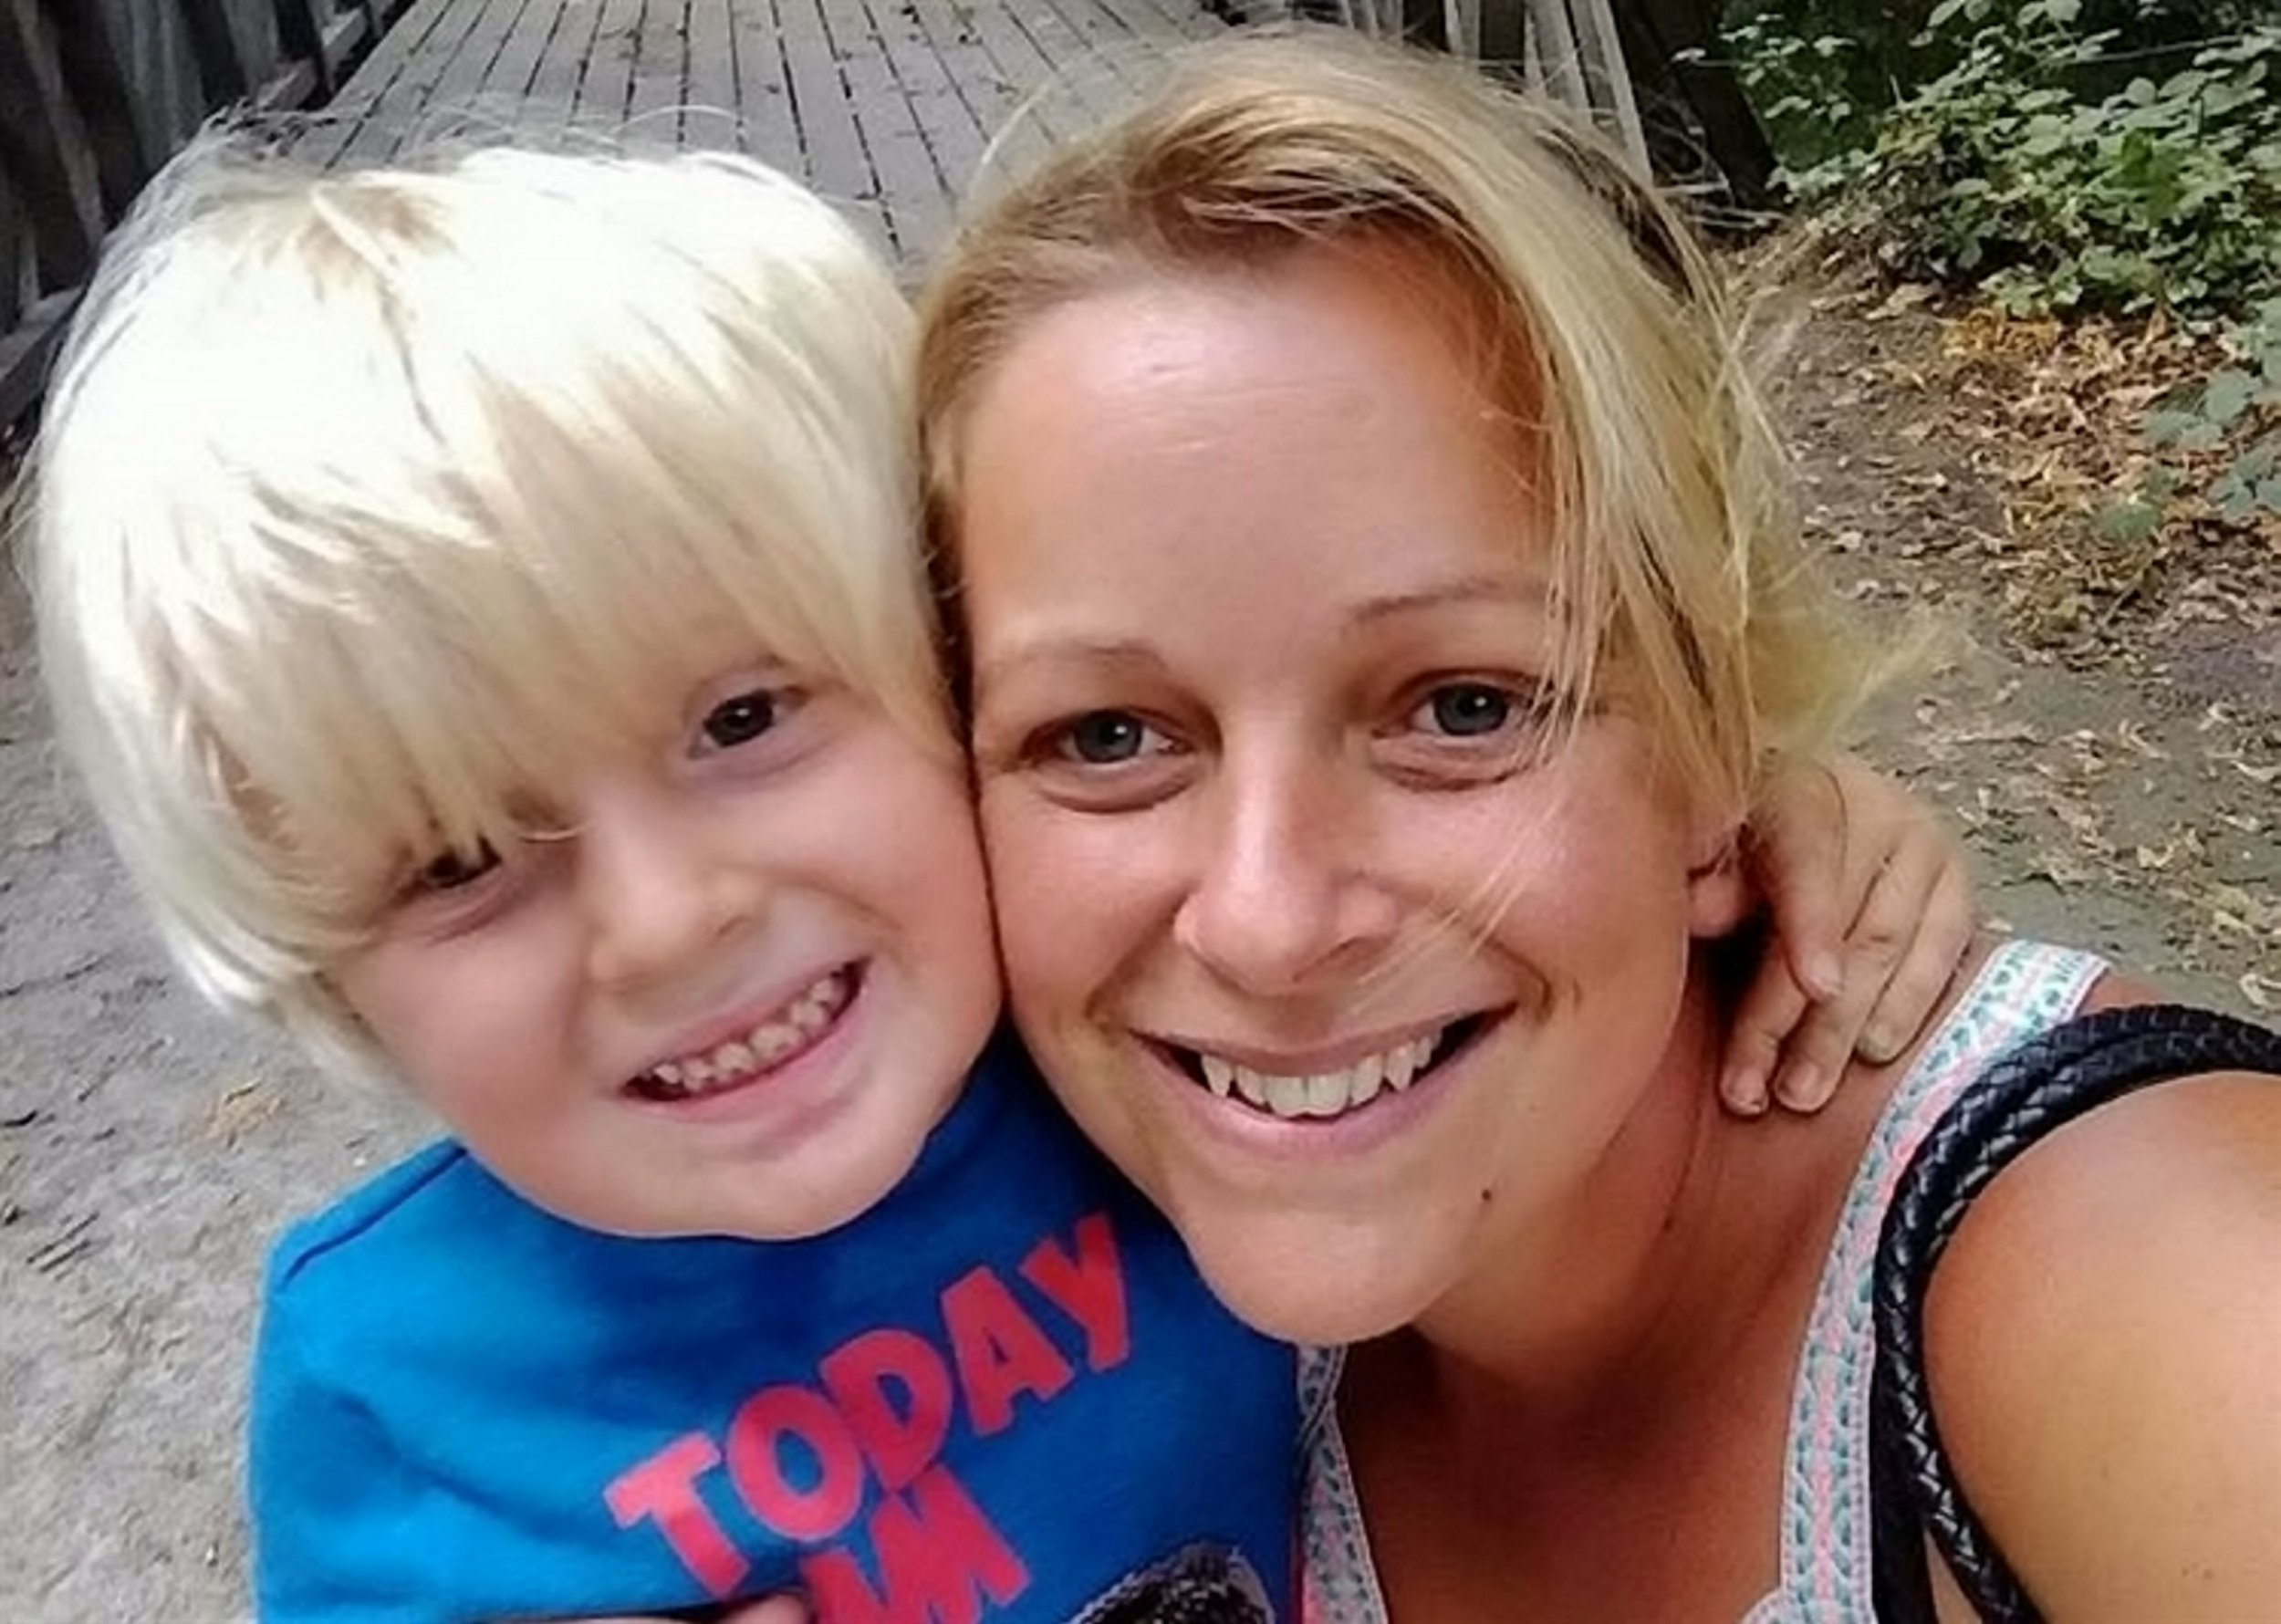 Vicky Page said a cinema-goer told her she shouldn't take her autistic son Noah on day trips (Picture: Vicky Page Facebook/SWNS)